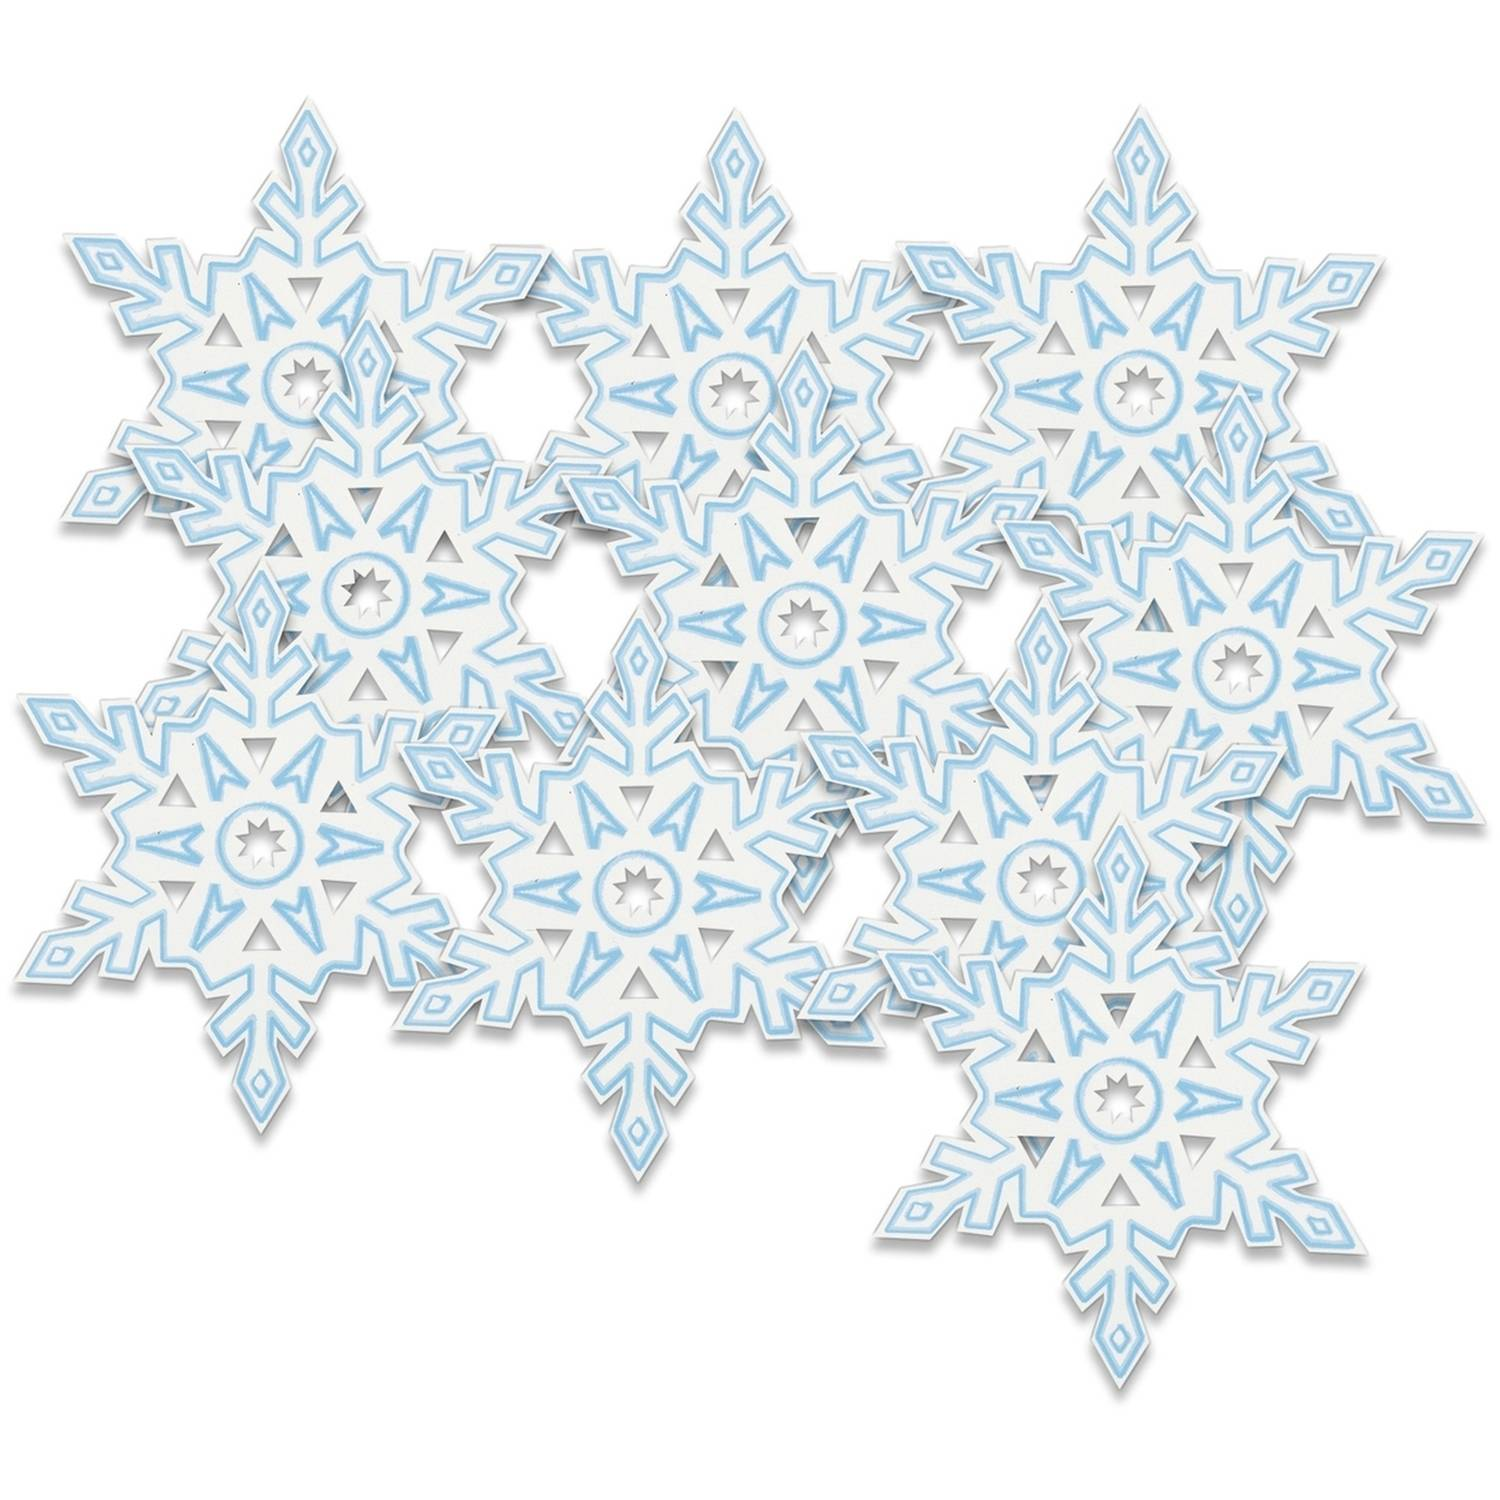 Paper Cutout Snowflake Holiday Decorations, 5 in, 10ct